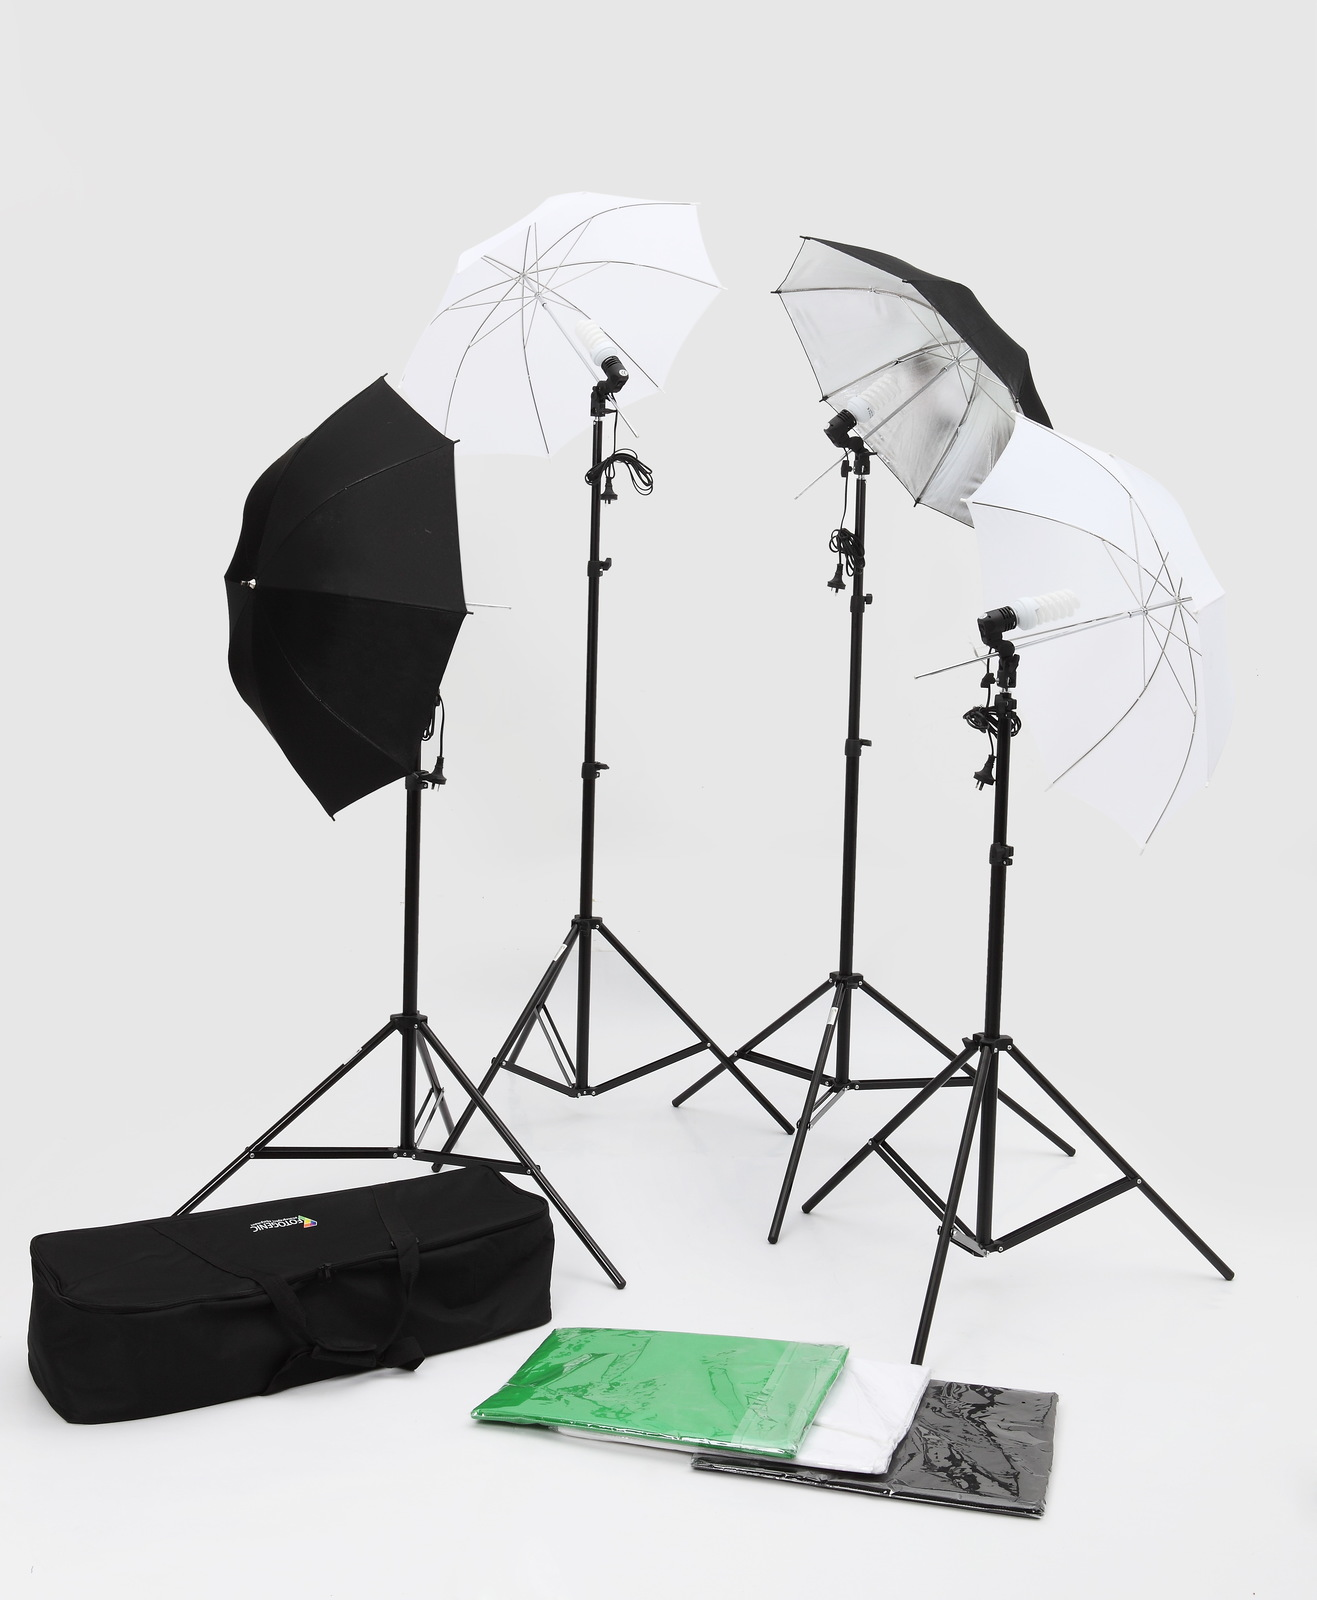 2m X 3m 4 Piece Umbrella Lighting Kit Includes 2m X 3m Muslin And